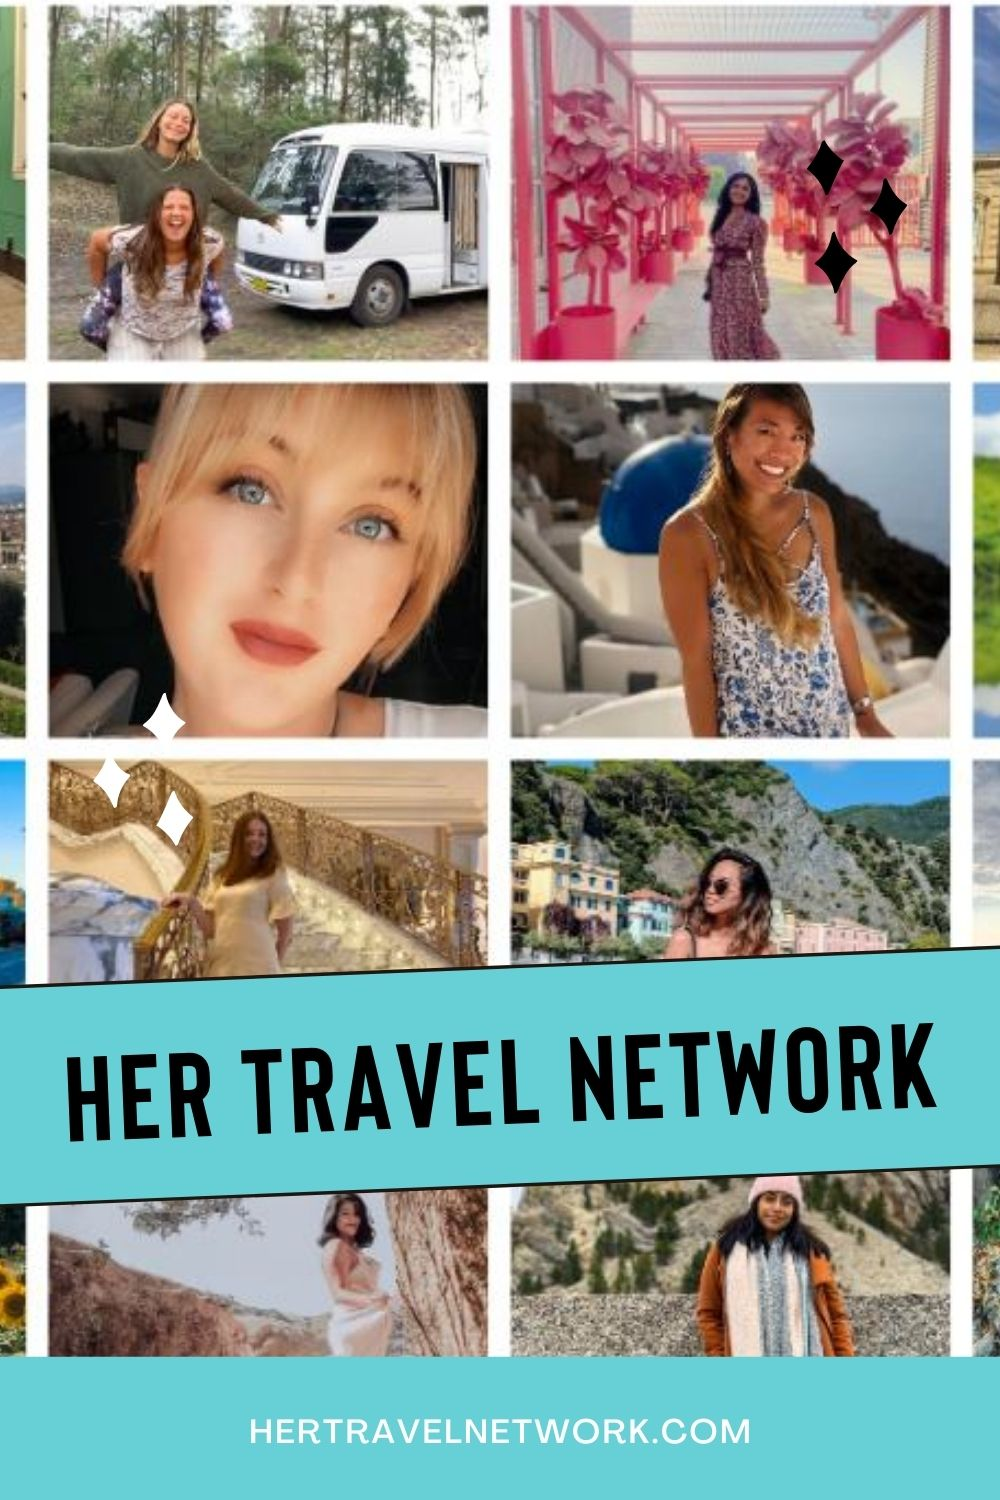 Her Travel Network